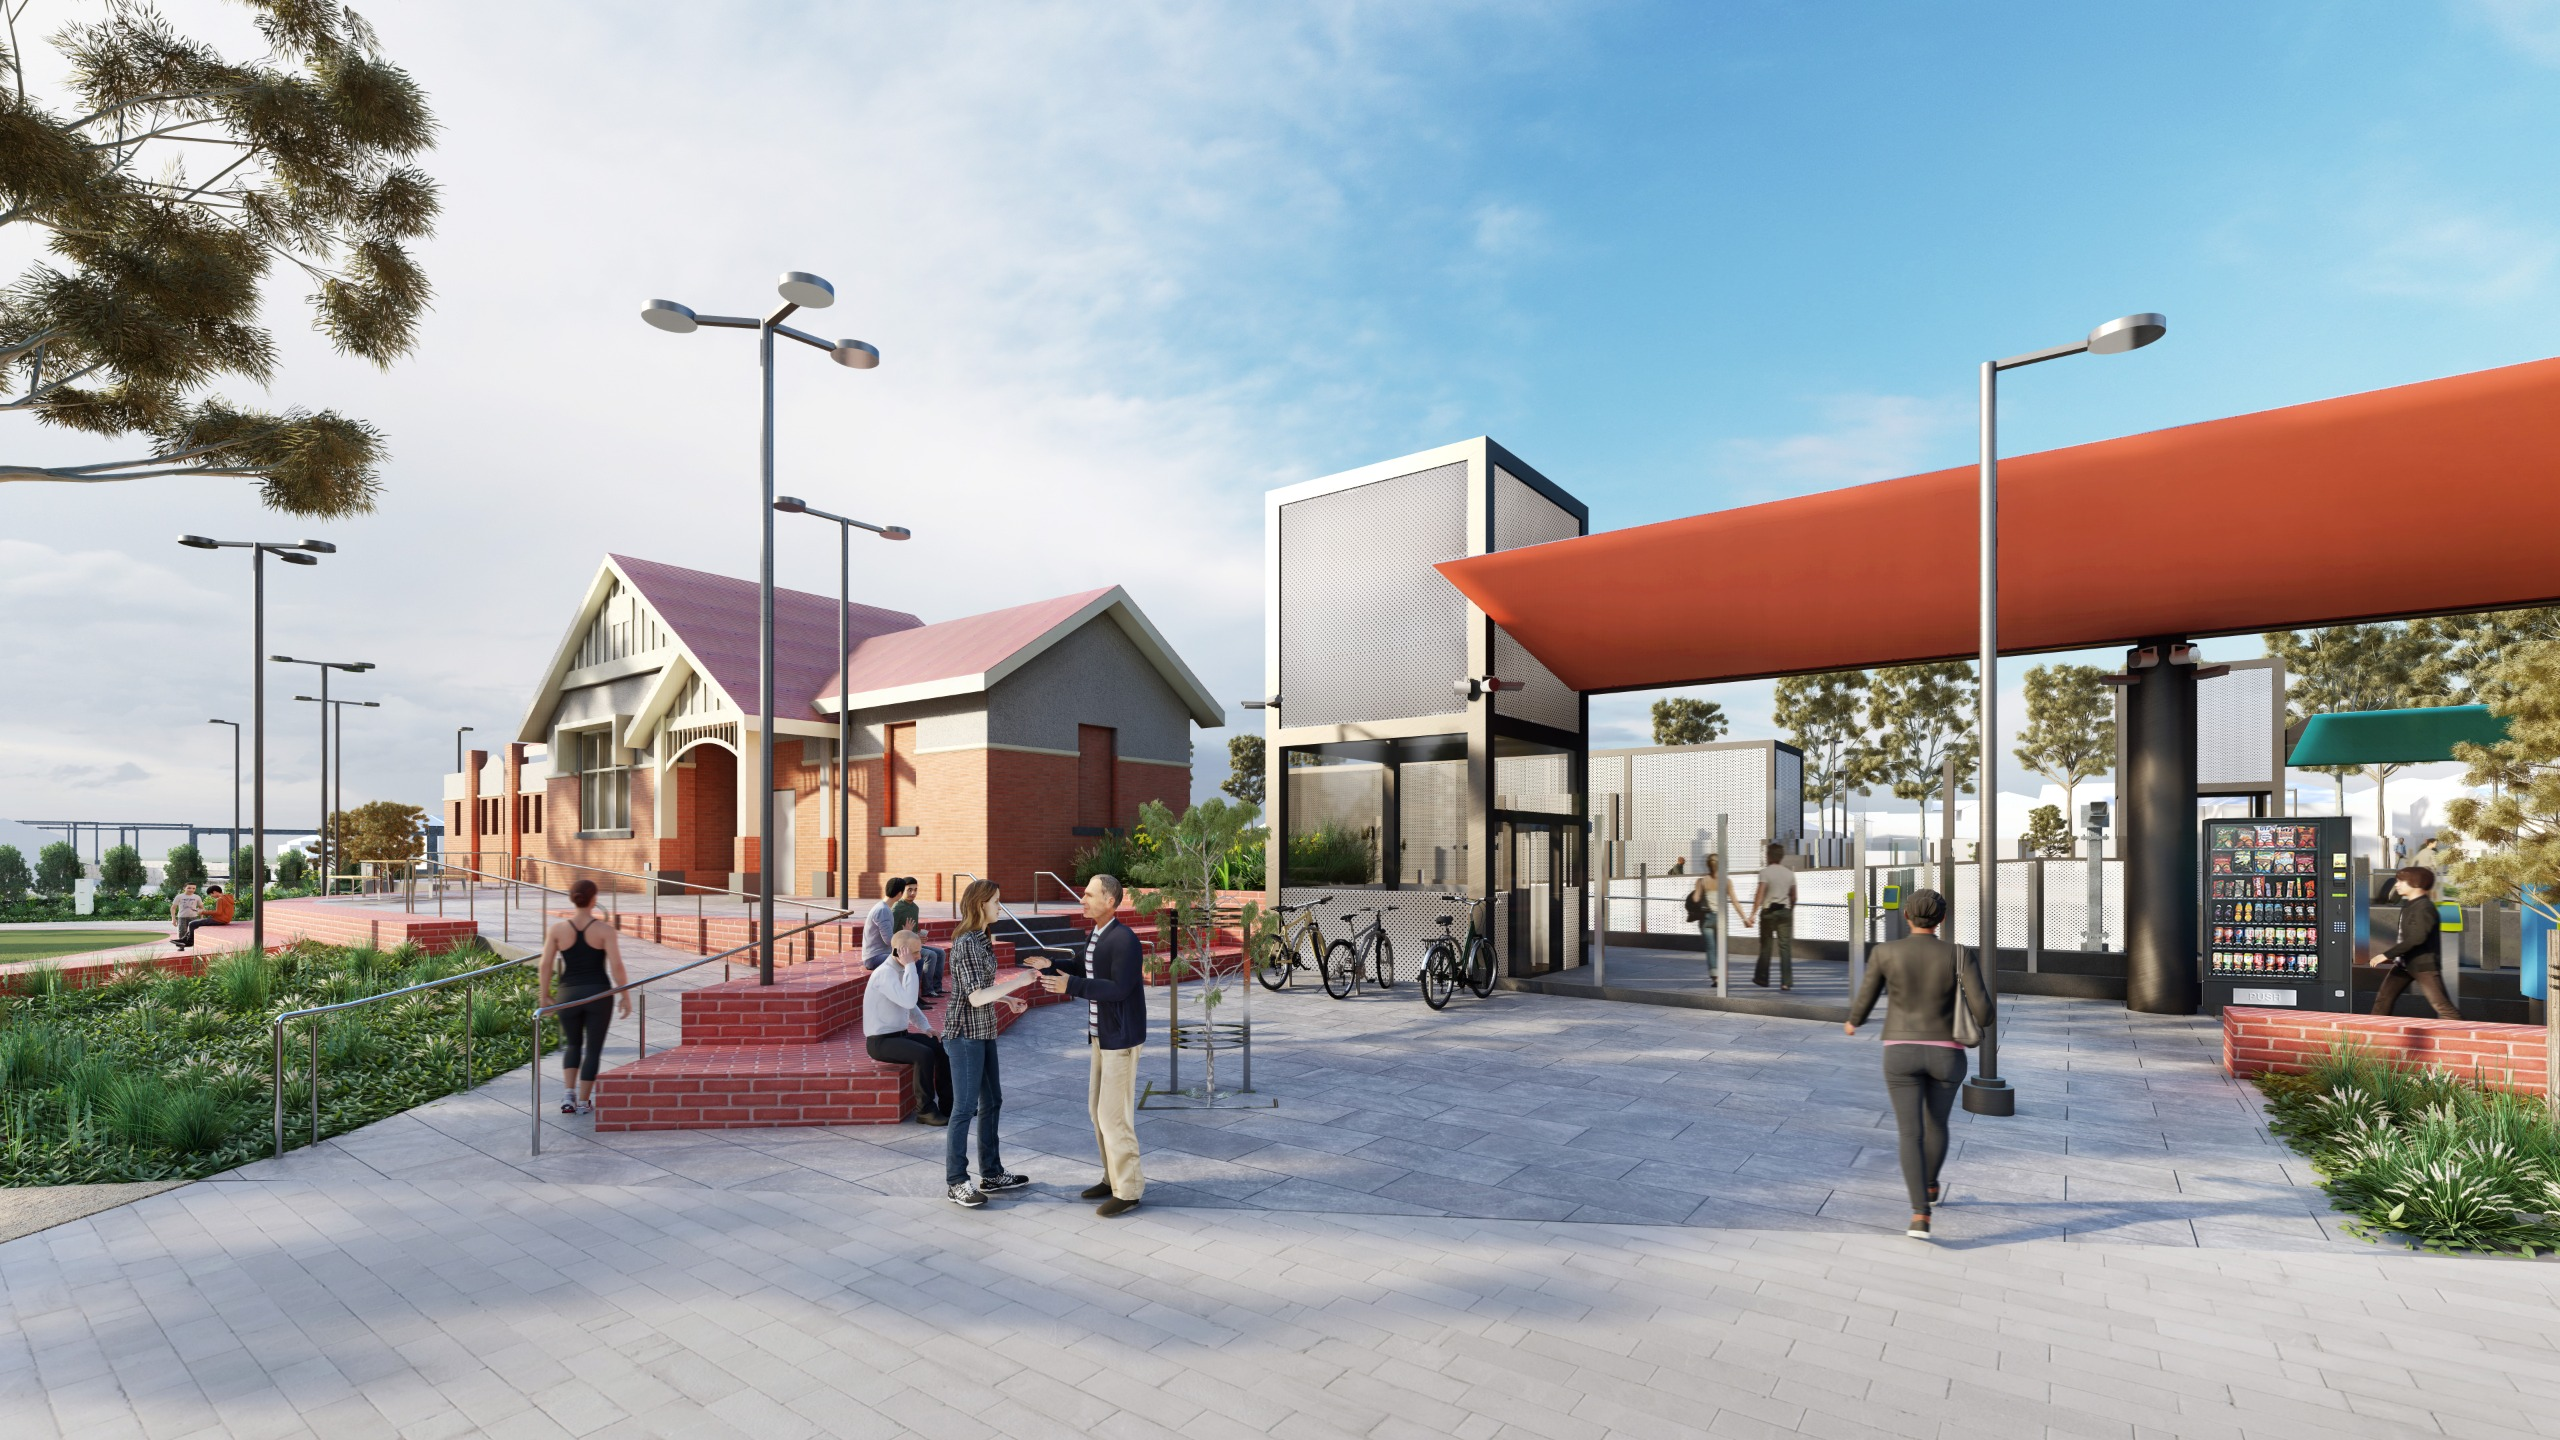 We will retain the western station building and use it for station purposed to minimise the need for additional buildings